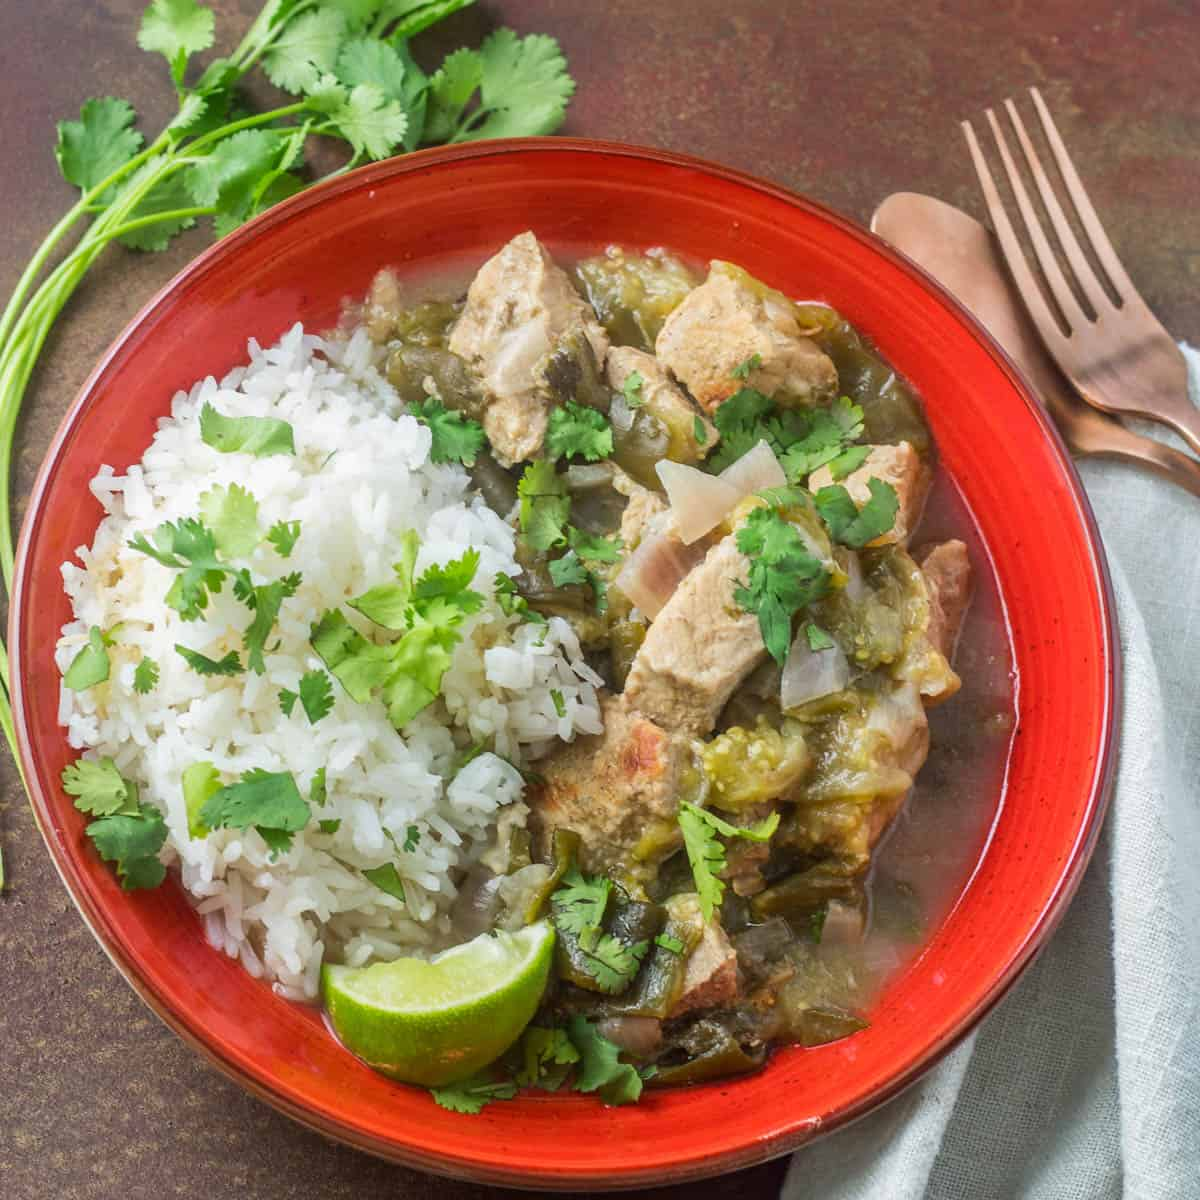 A red ceramic bowl of pork, tomatillos, green chile, and rice garnished with lime and cilantro.